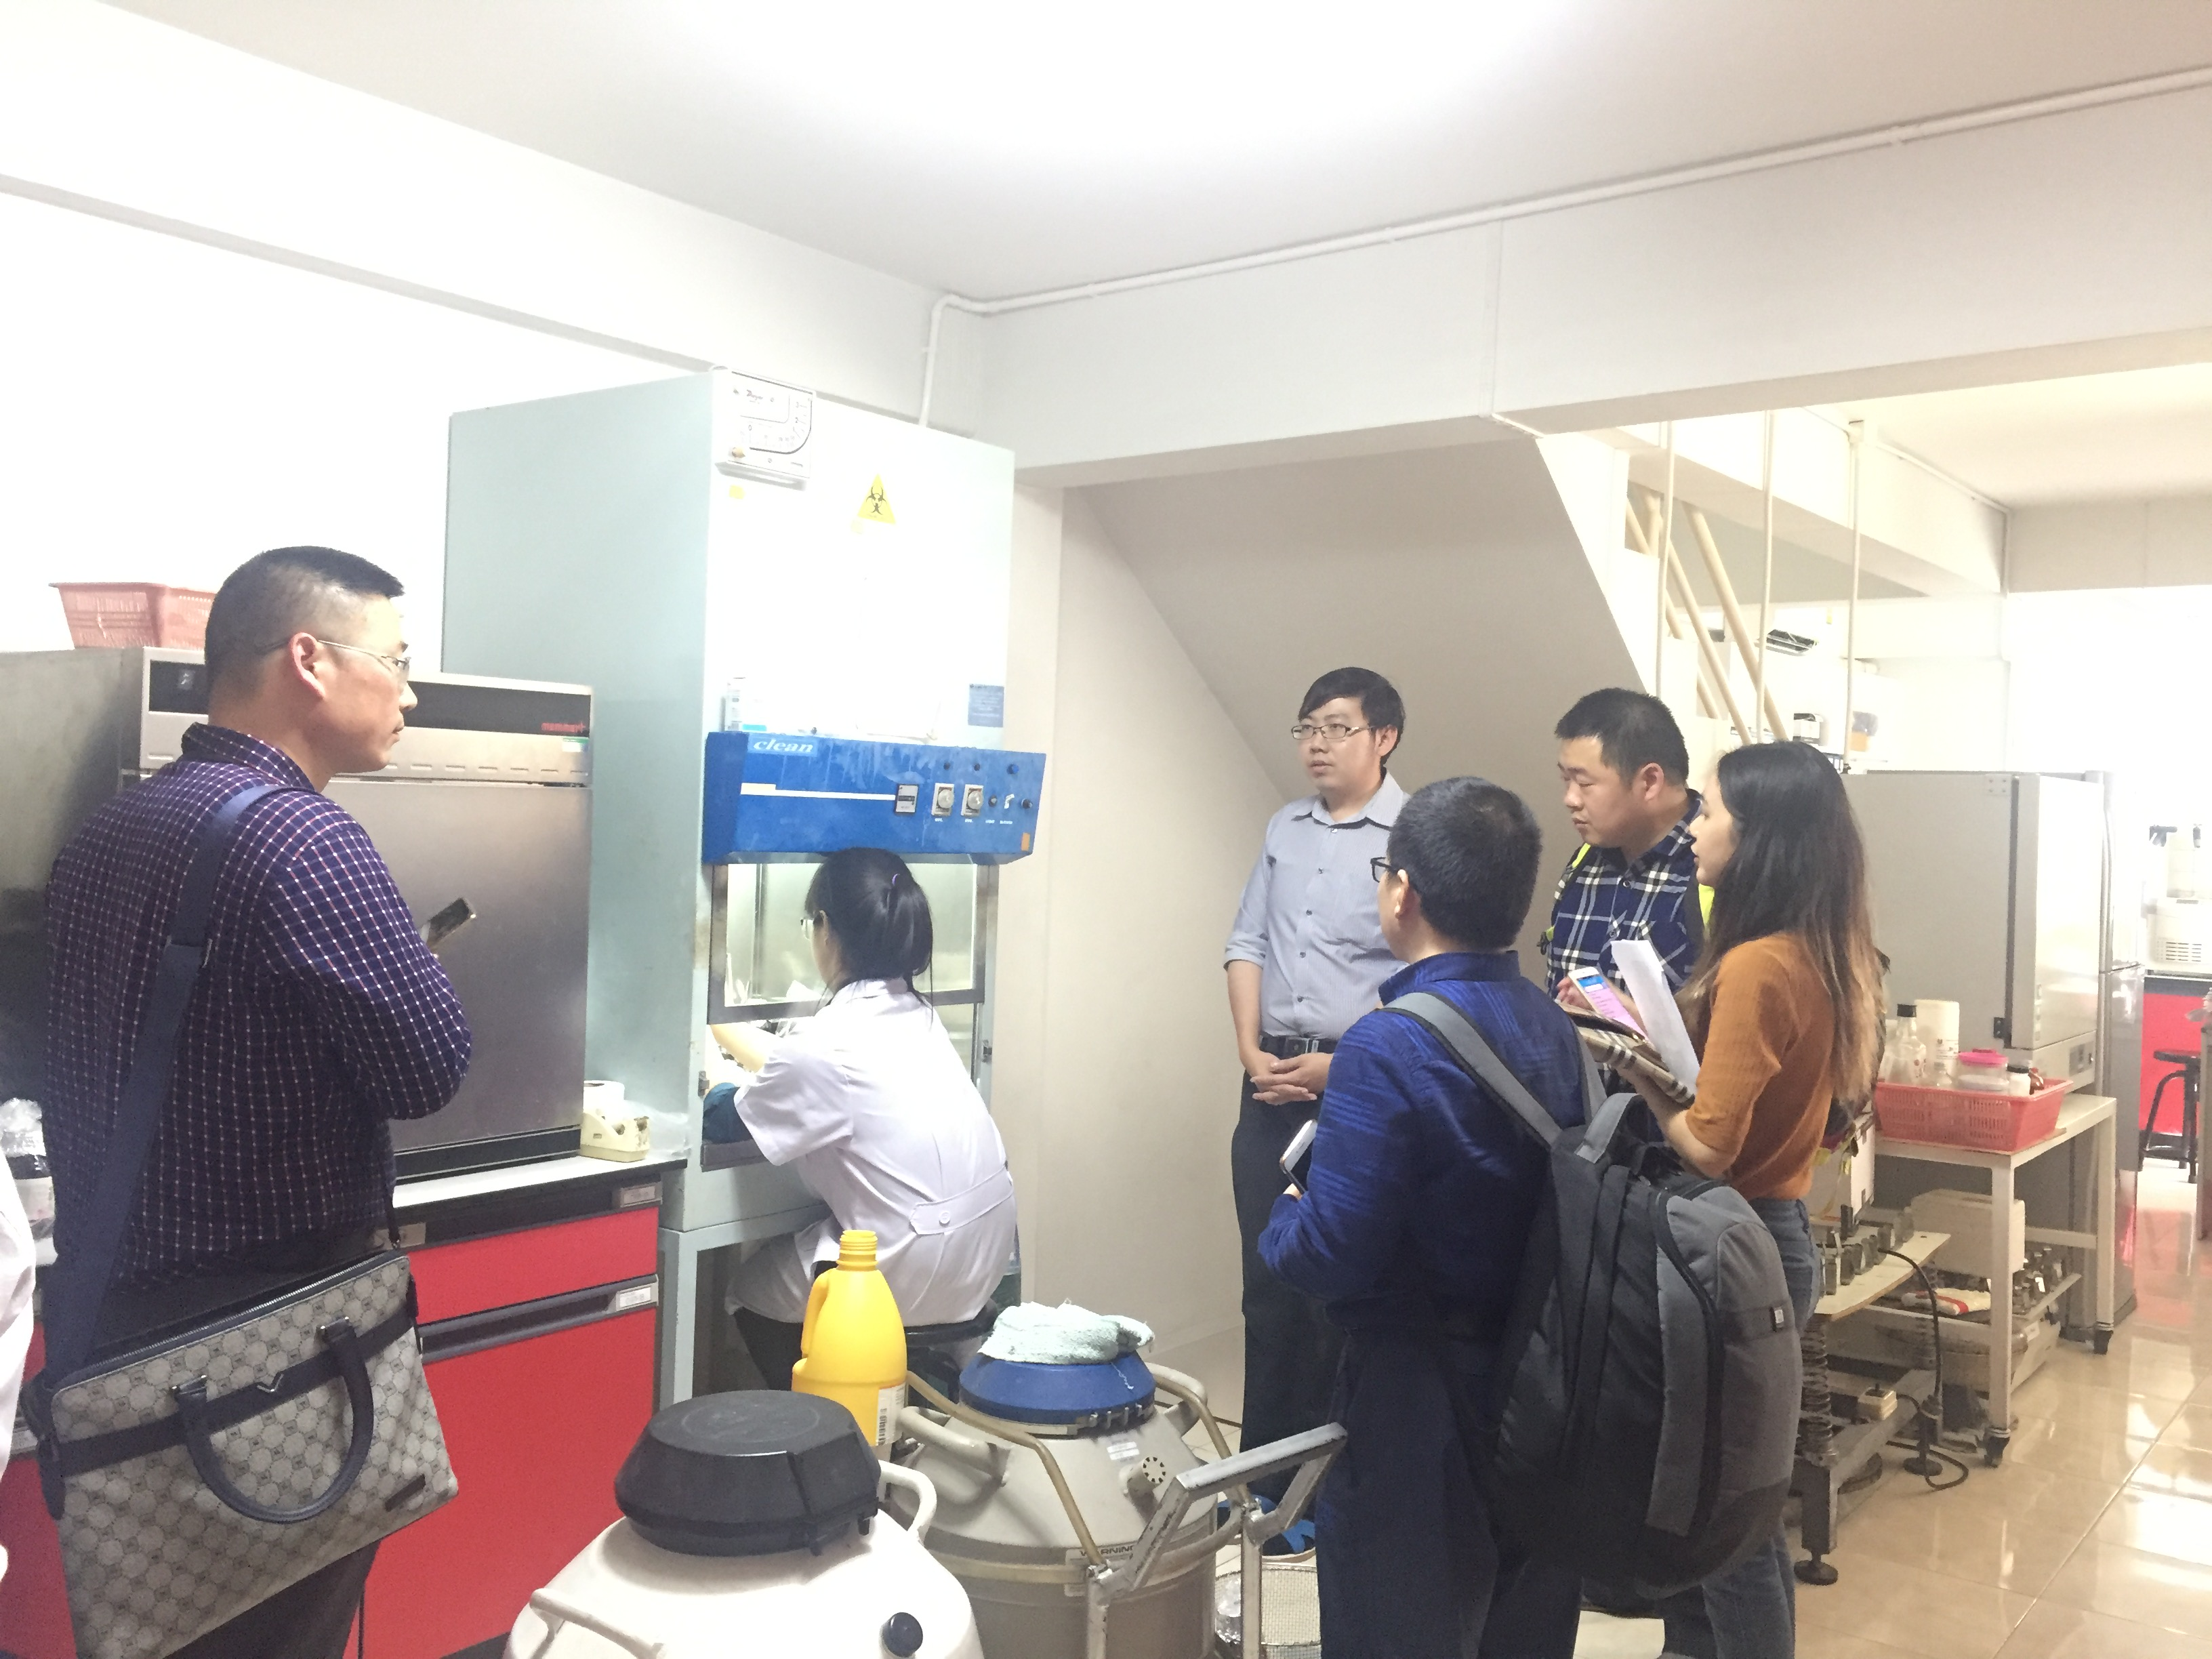 The Reseacher Team from Institute of Chinese Herbal Medicine, Hubei Academy of Agricultural Sciences, China visited Manose Health and Beauty Research Center